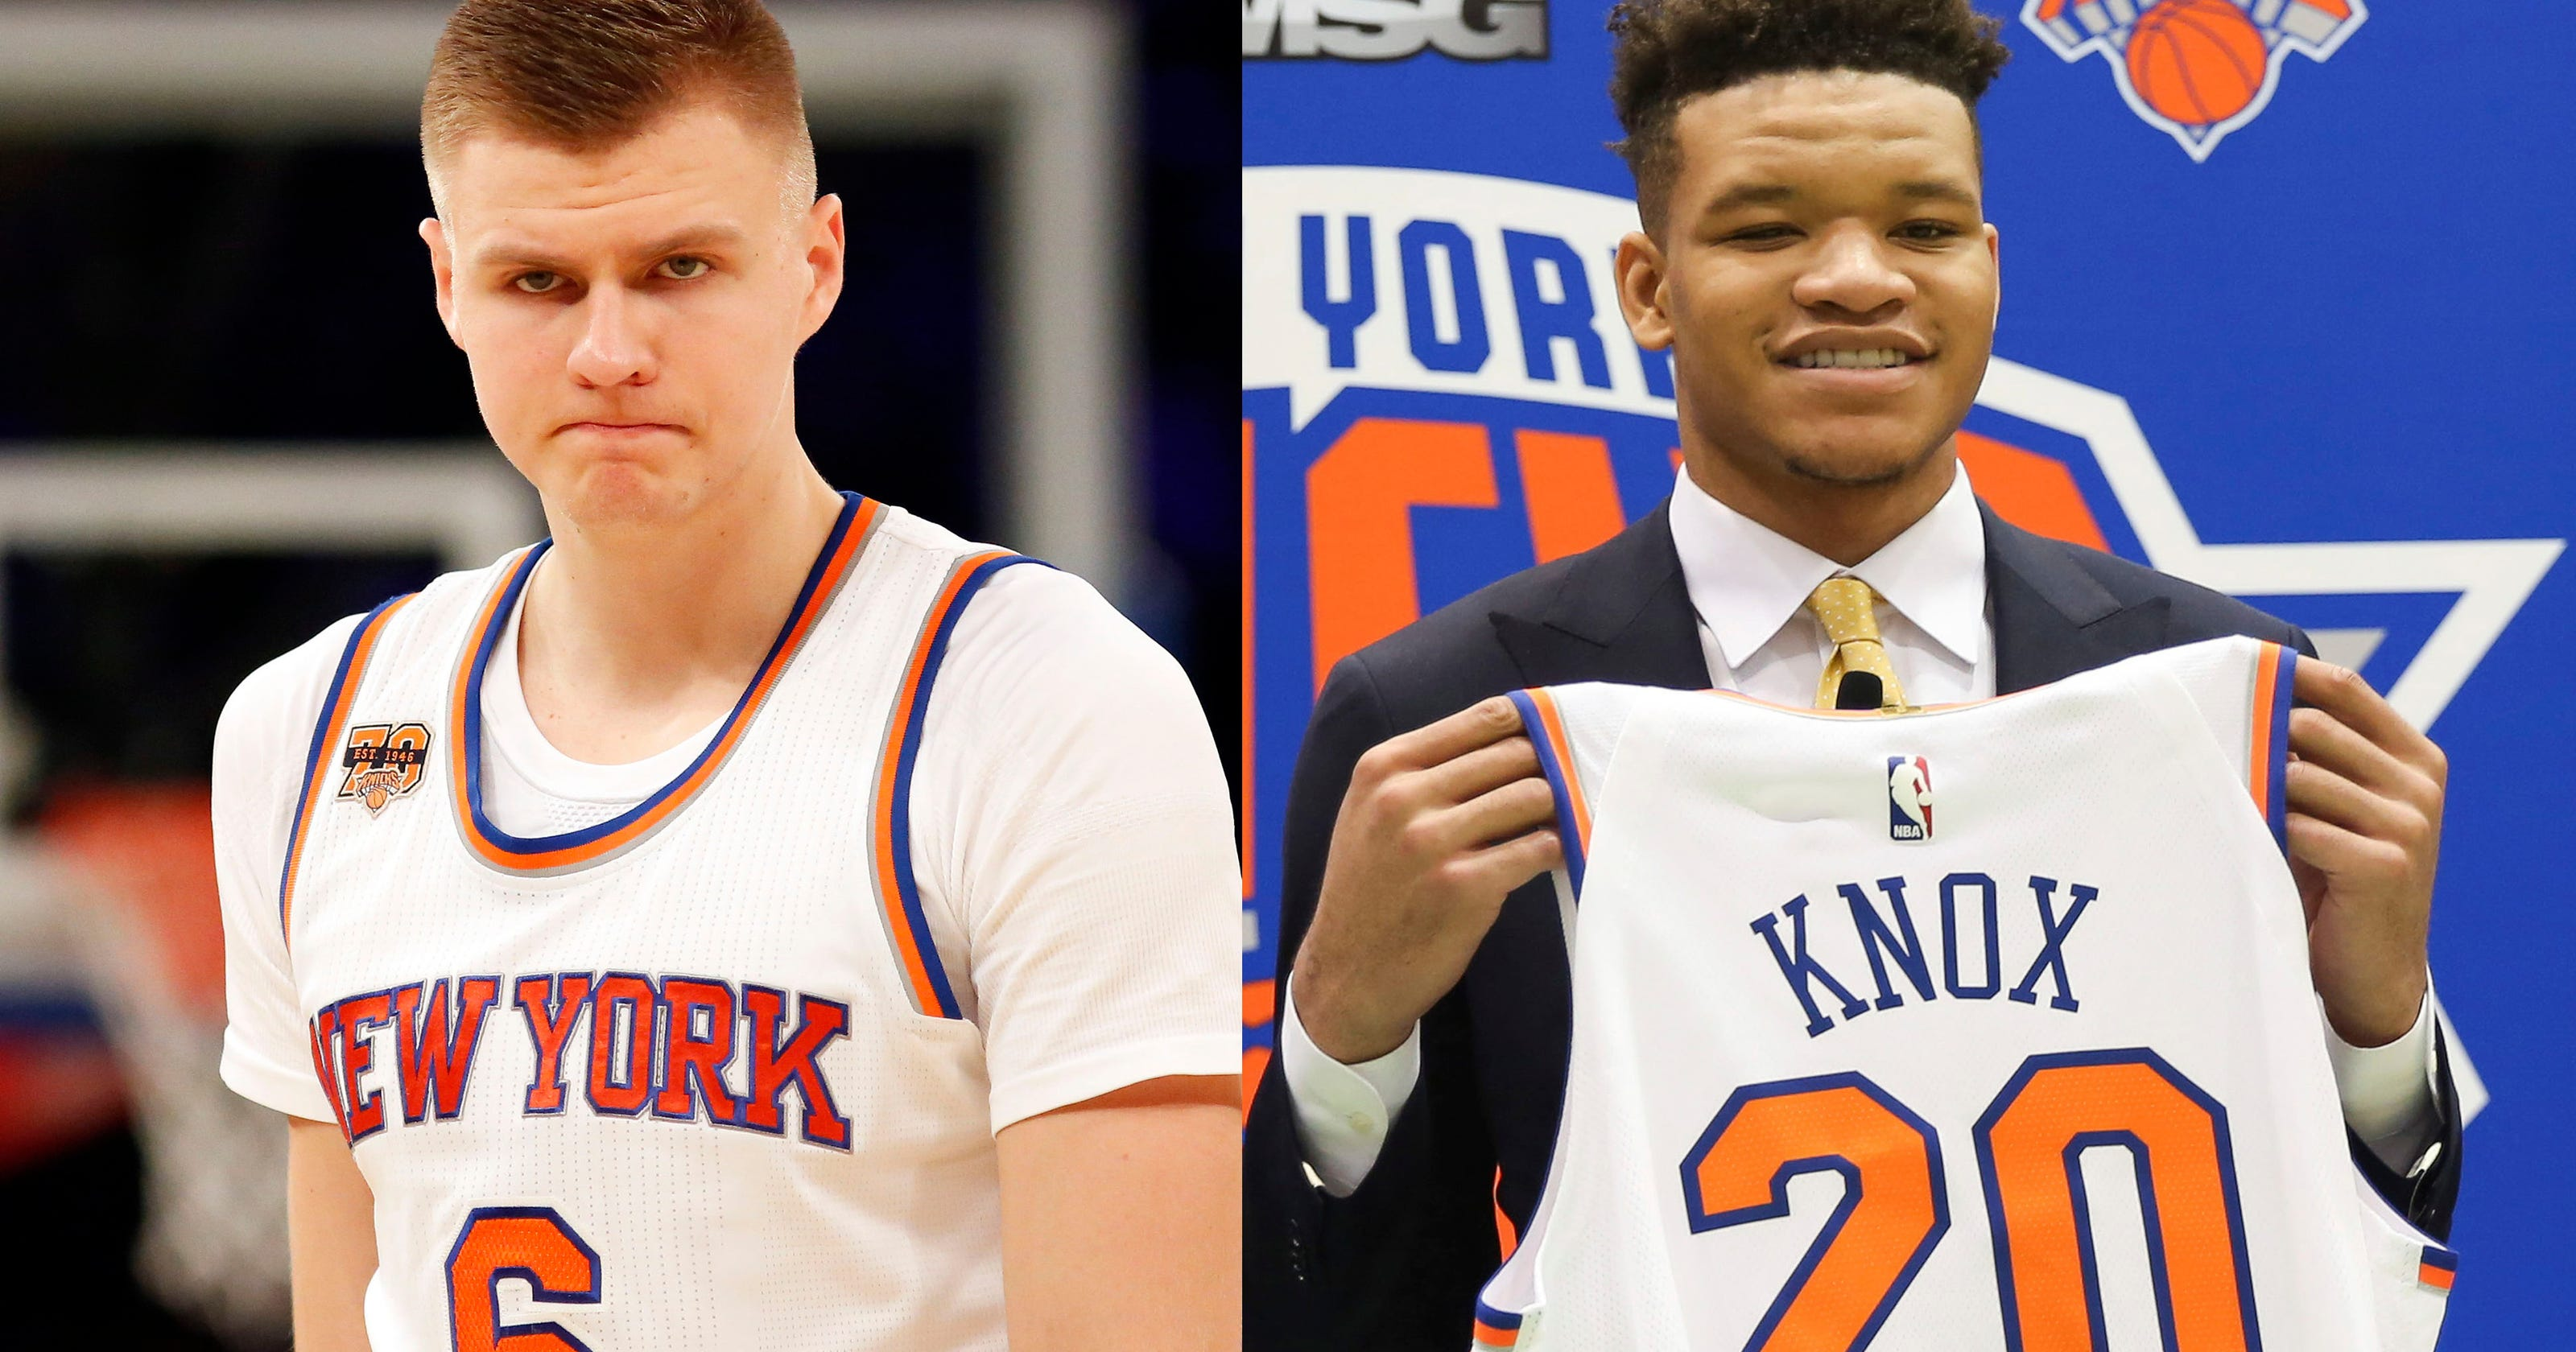 finest selection 1f2c0 d53ed New York Knicks 2018-19 roster: Ranking their players